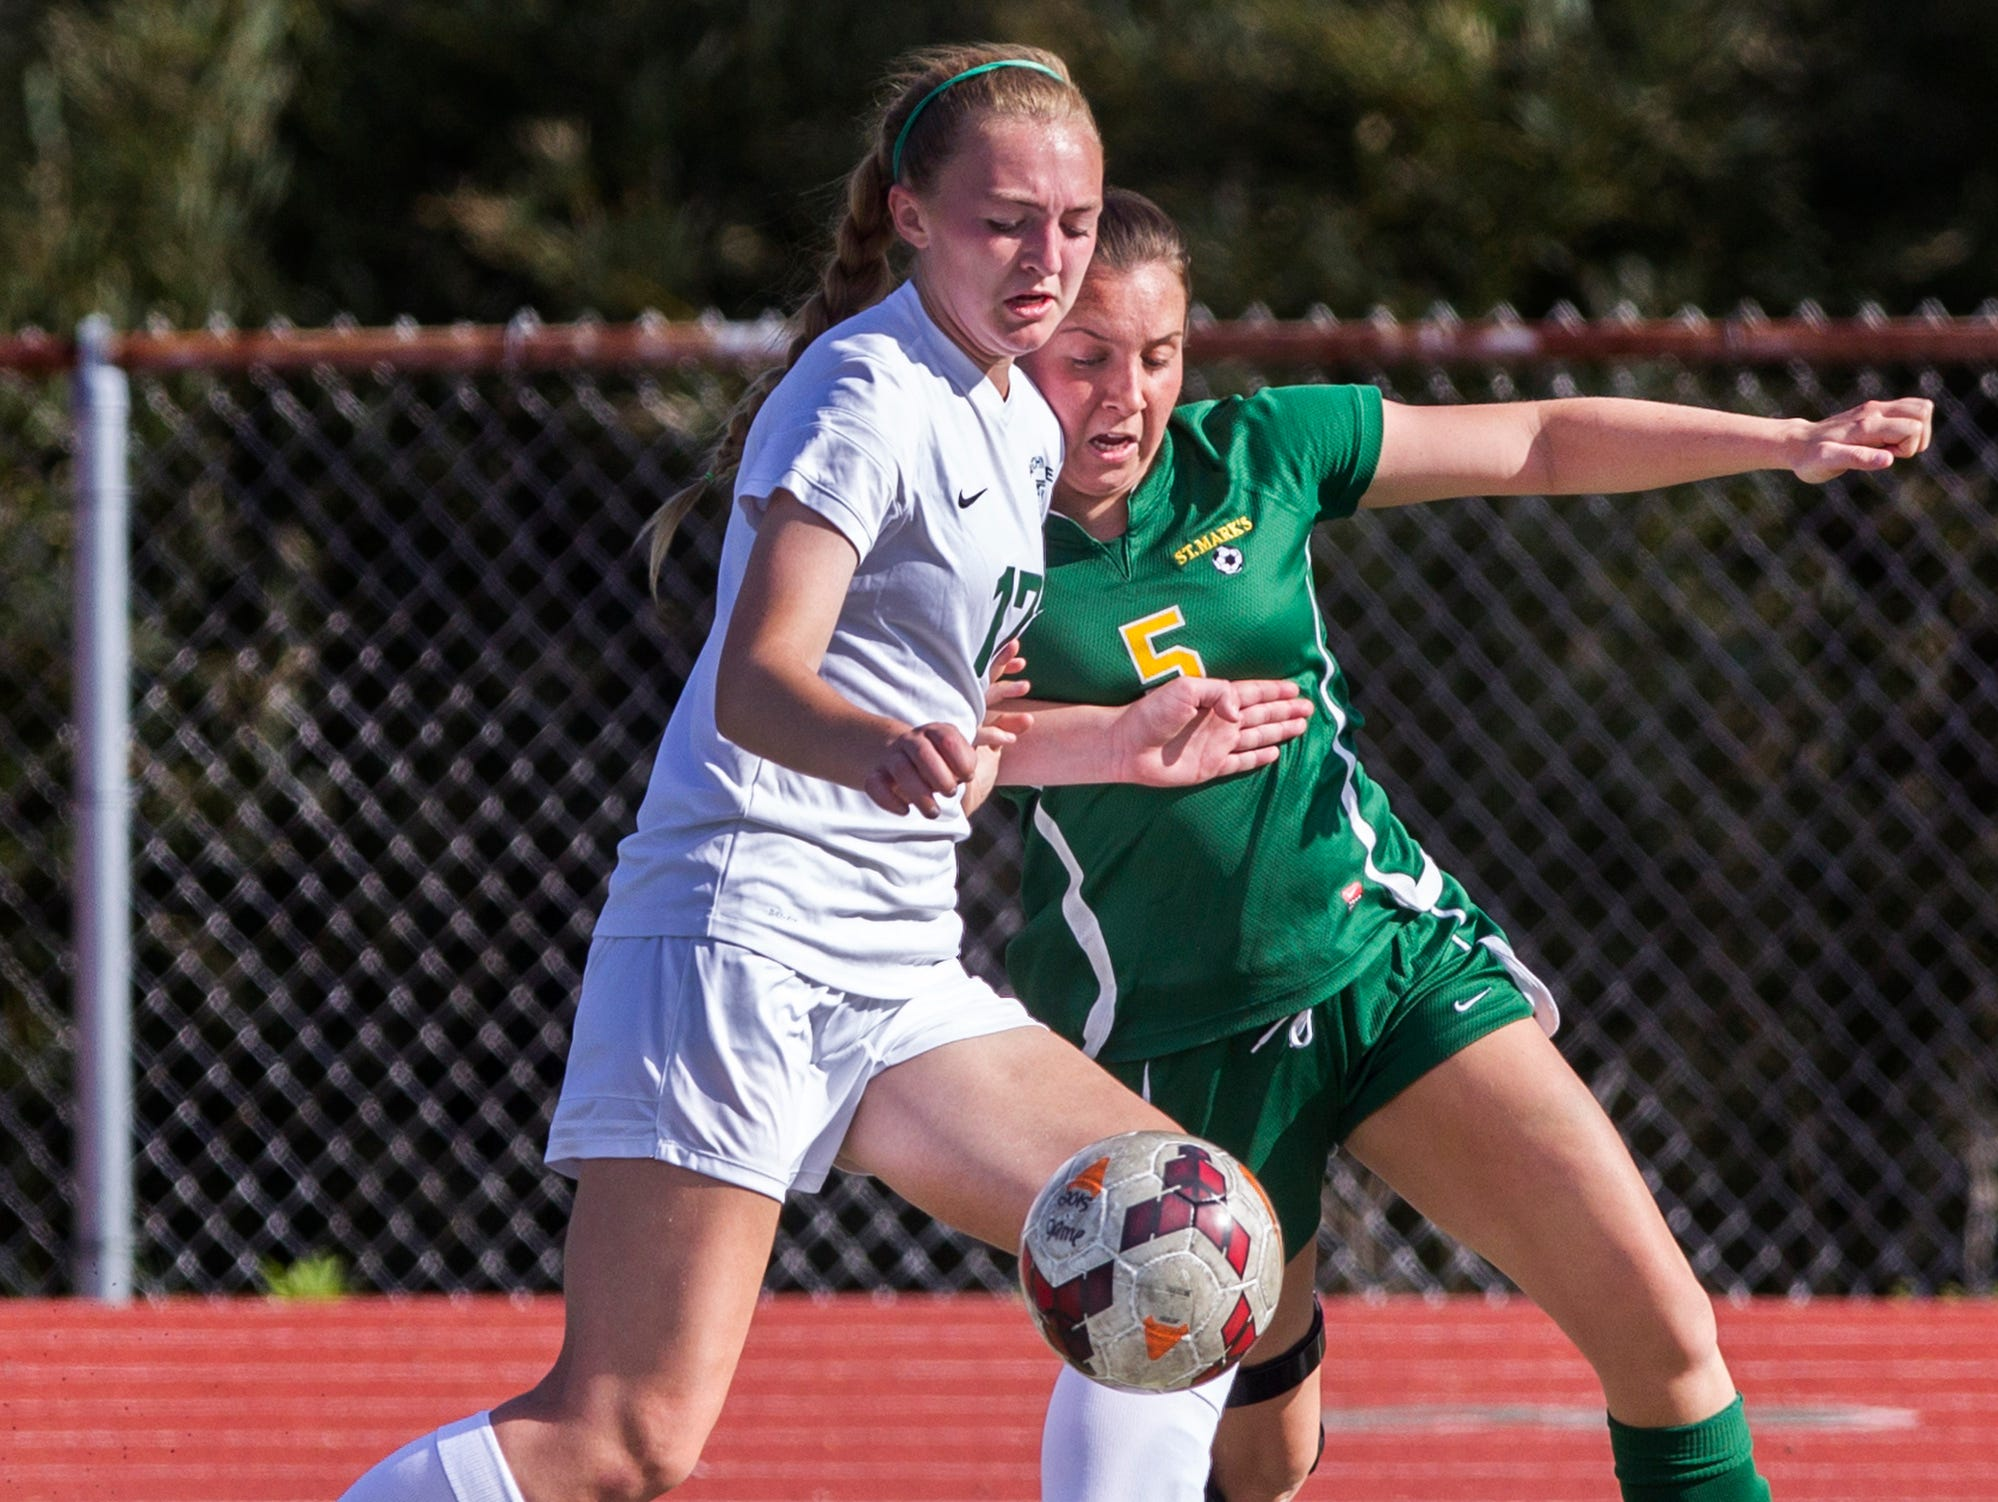 Archmere's Lauren Murray (No. 17) and St. Mark's Claire Igo (No. 5) fight for position on the ball during a game at Archmere on Wednesday afternoon. Archmere defeated St. Mark's by a score of 2-1.